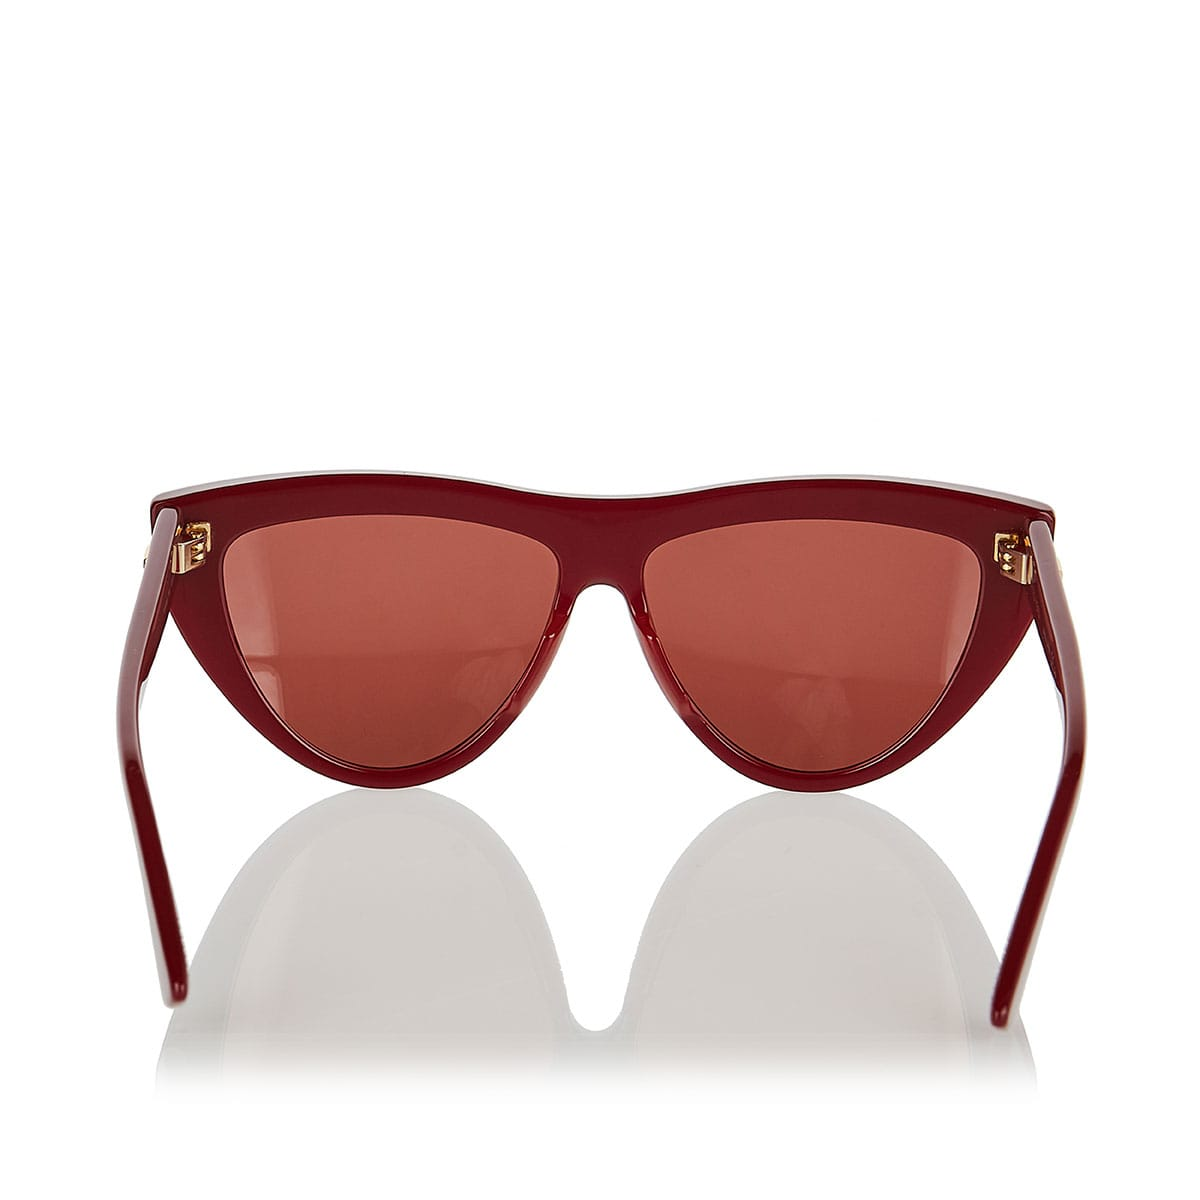 Teardrop acetate sunglasses